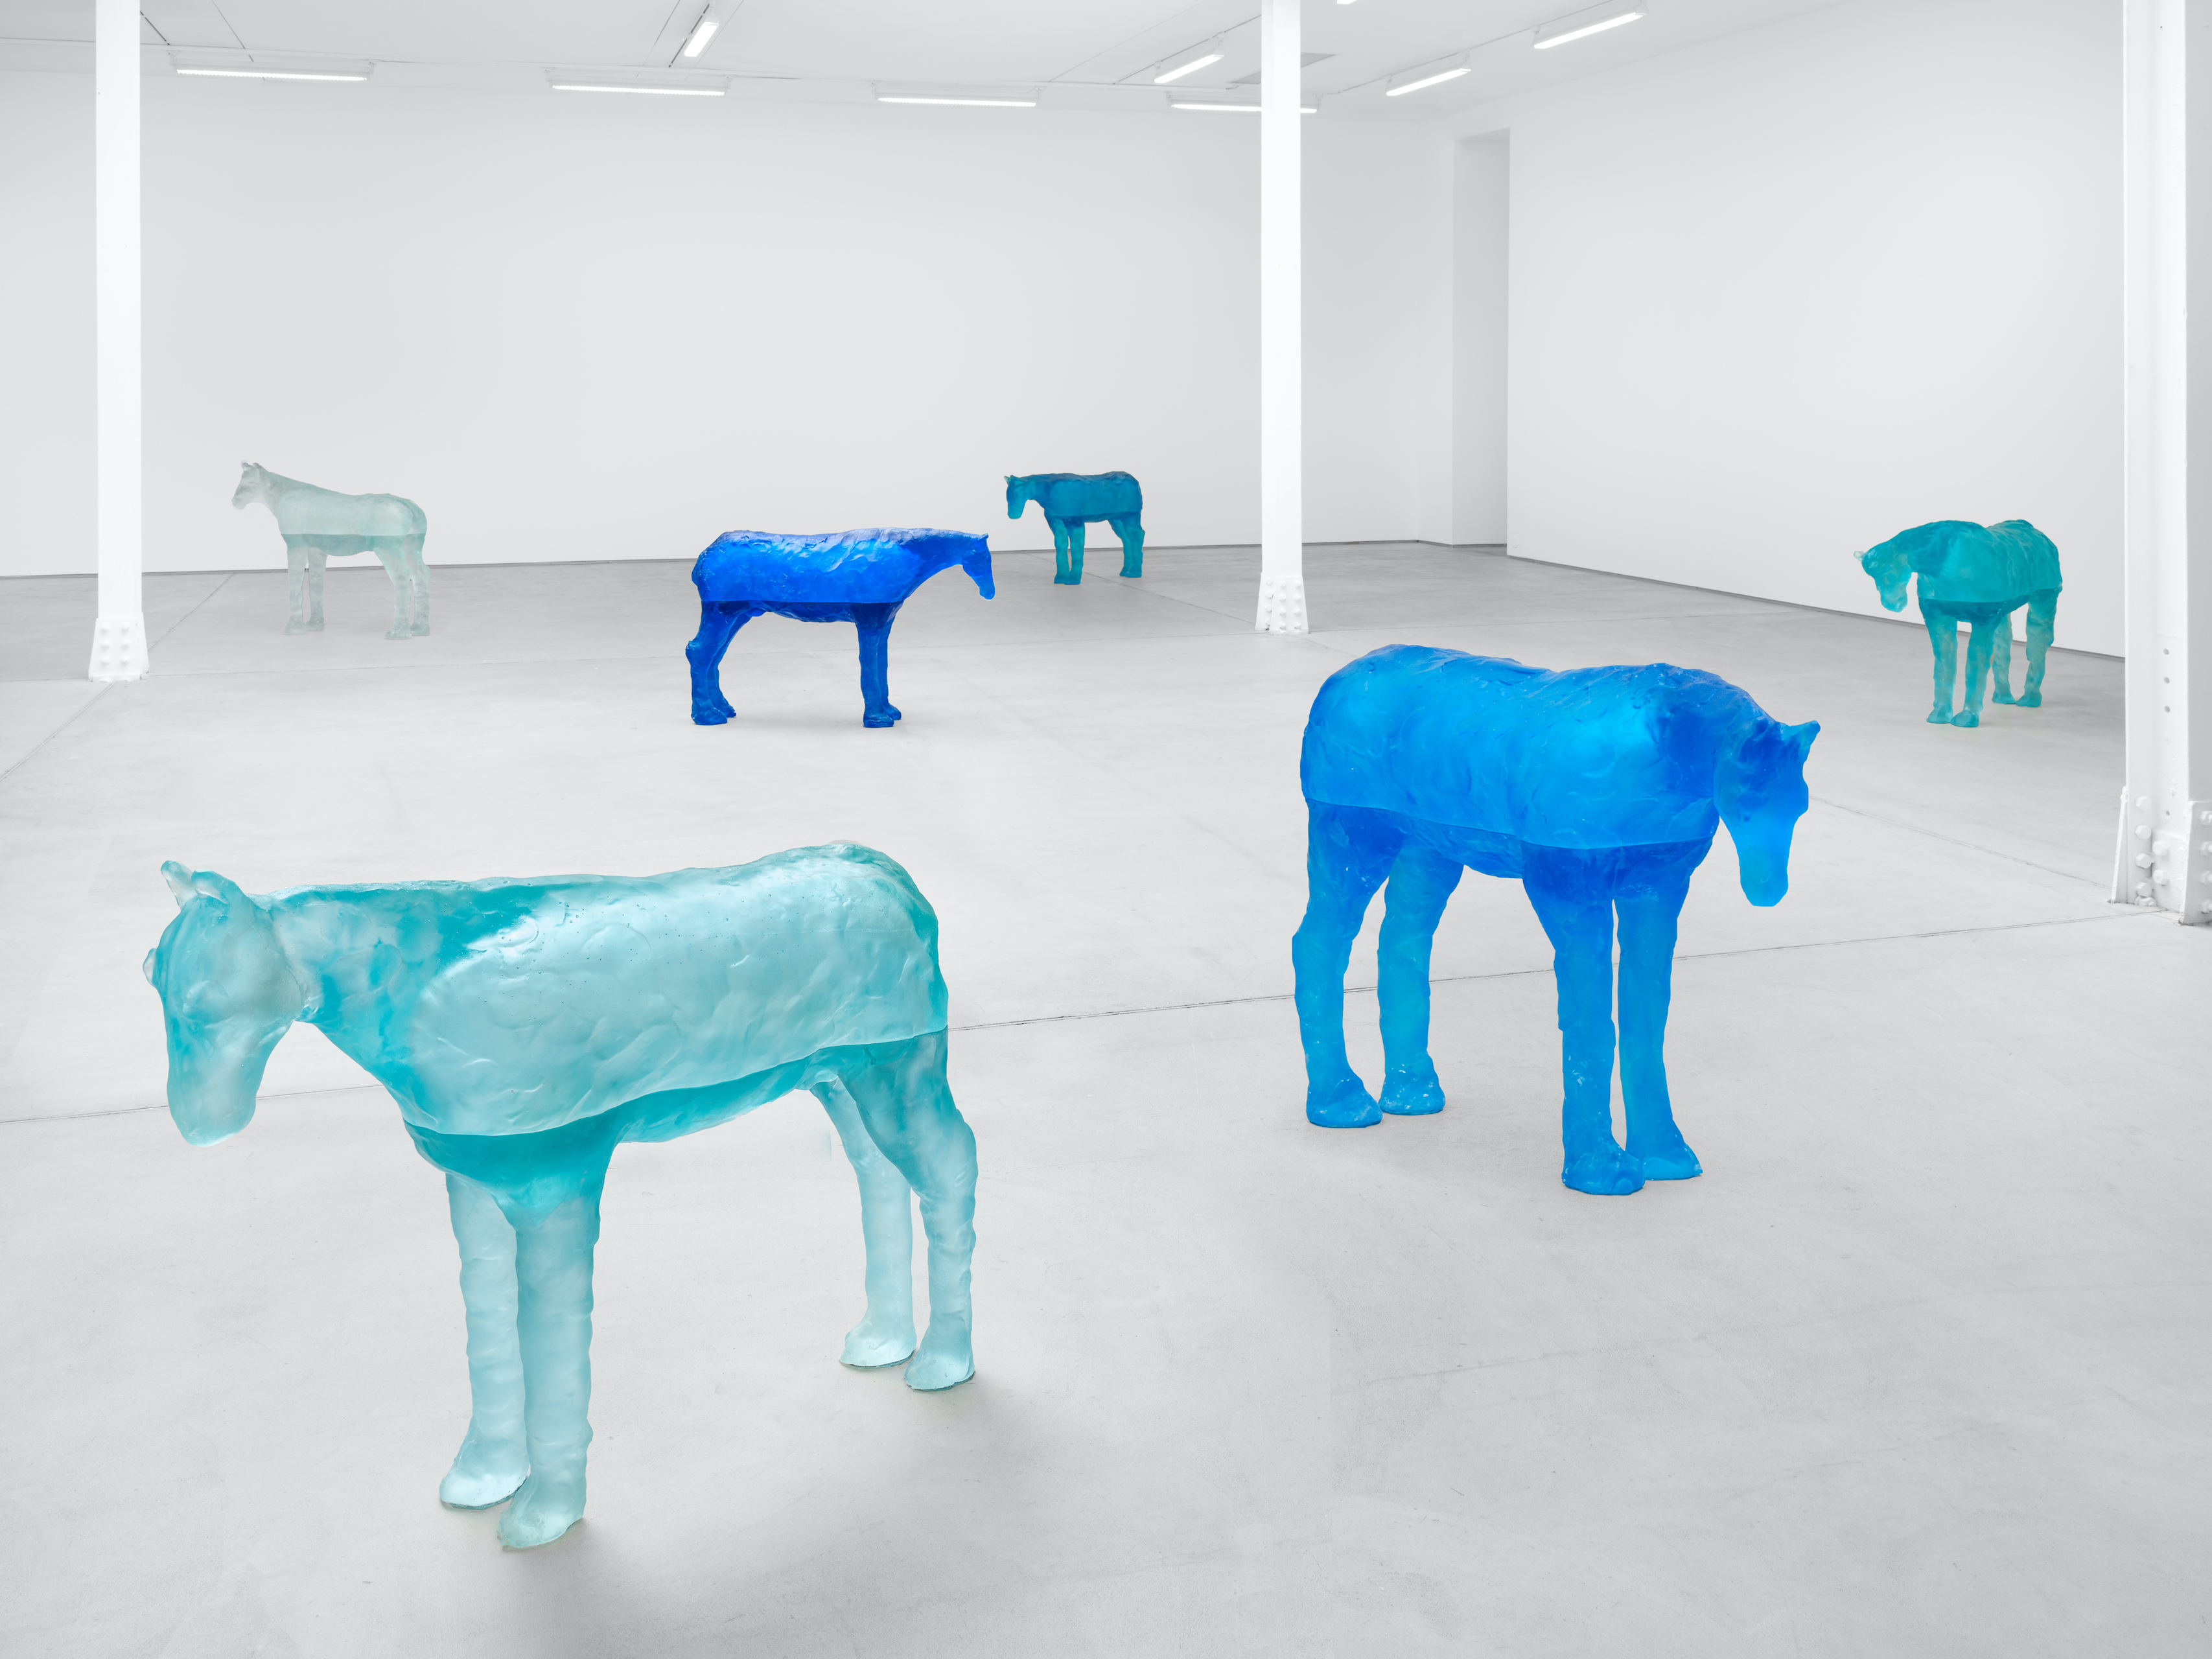 Installation view, Ugo Rondinone, a sky . a sea . distant mountains . horses . spring . at Sadie Coles HQ, 62 Kingly Street, London, 12 April - 22 May 2021 Credit: © Ugo Rondinone, courtesy Sadie Coles HQ, London. Photo: Eva Herzog